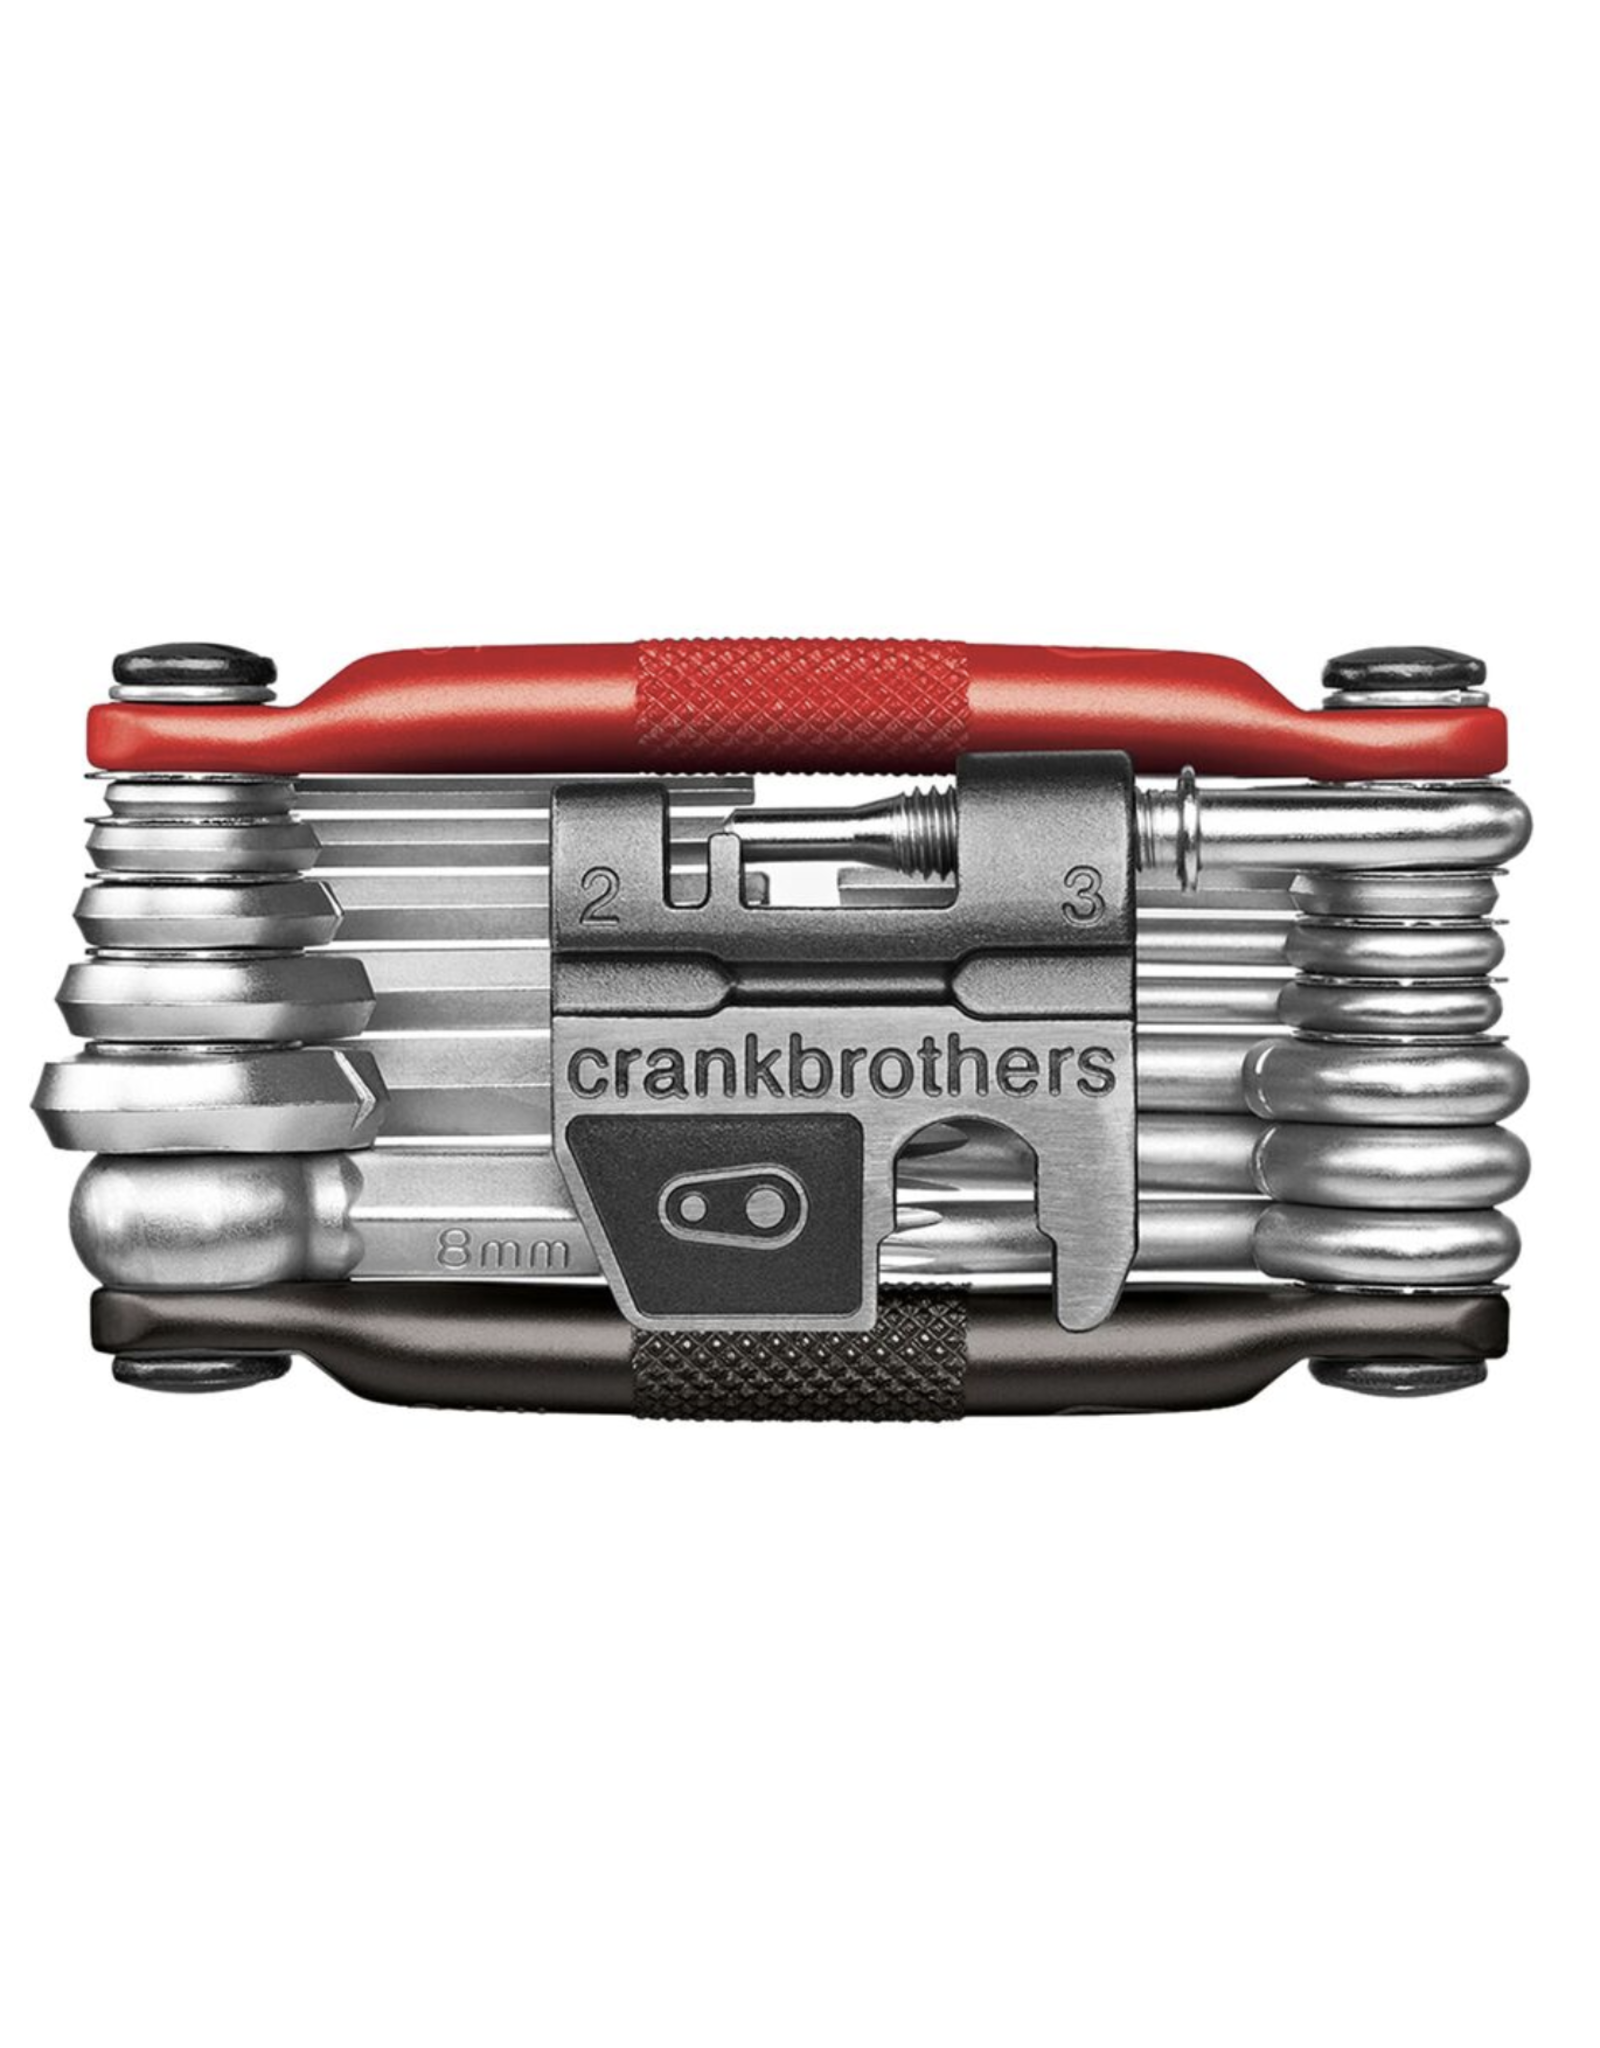 Crank Brothers Crank Brothers Multi 19 Tool - Black/Red